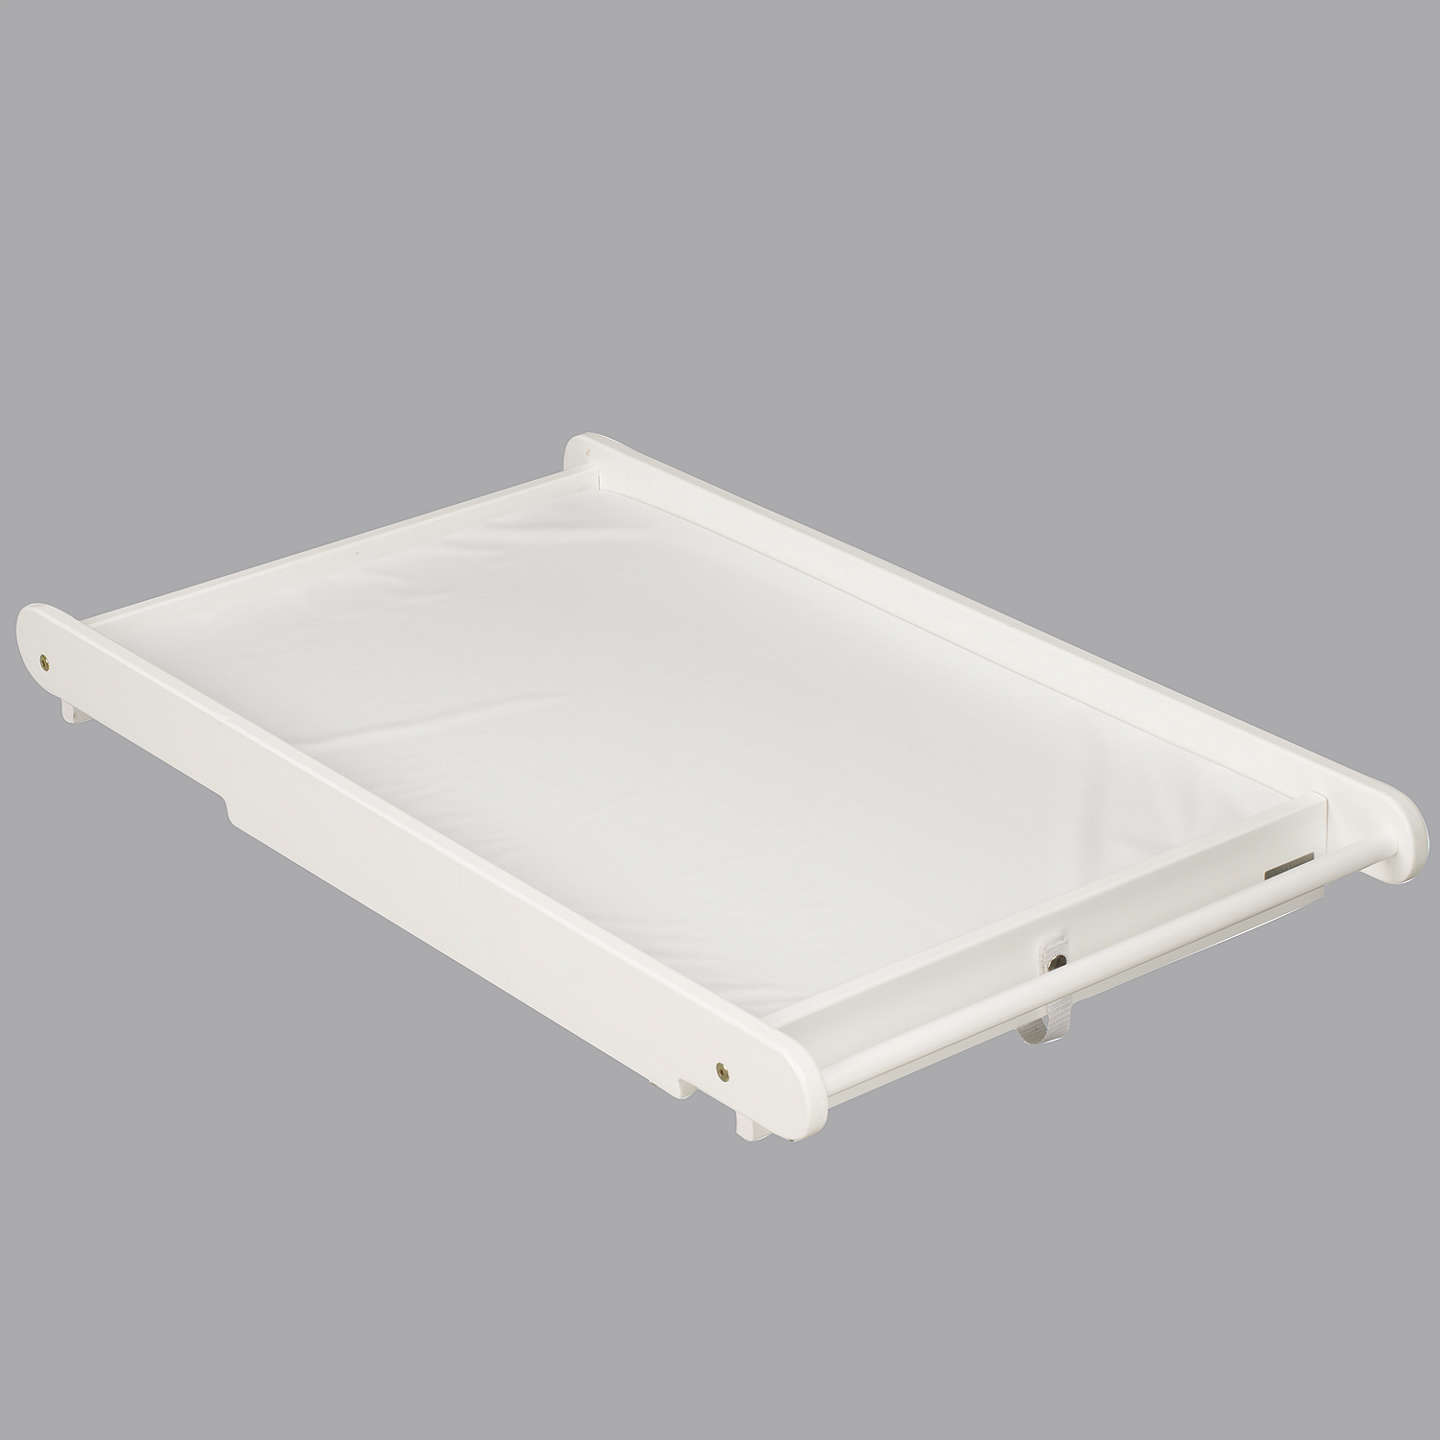 BuyJohn Lewis Cot Top Changer and Changing Mat, White Online at johnlewis.com